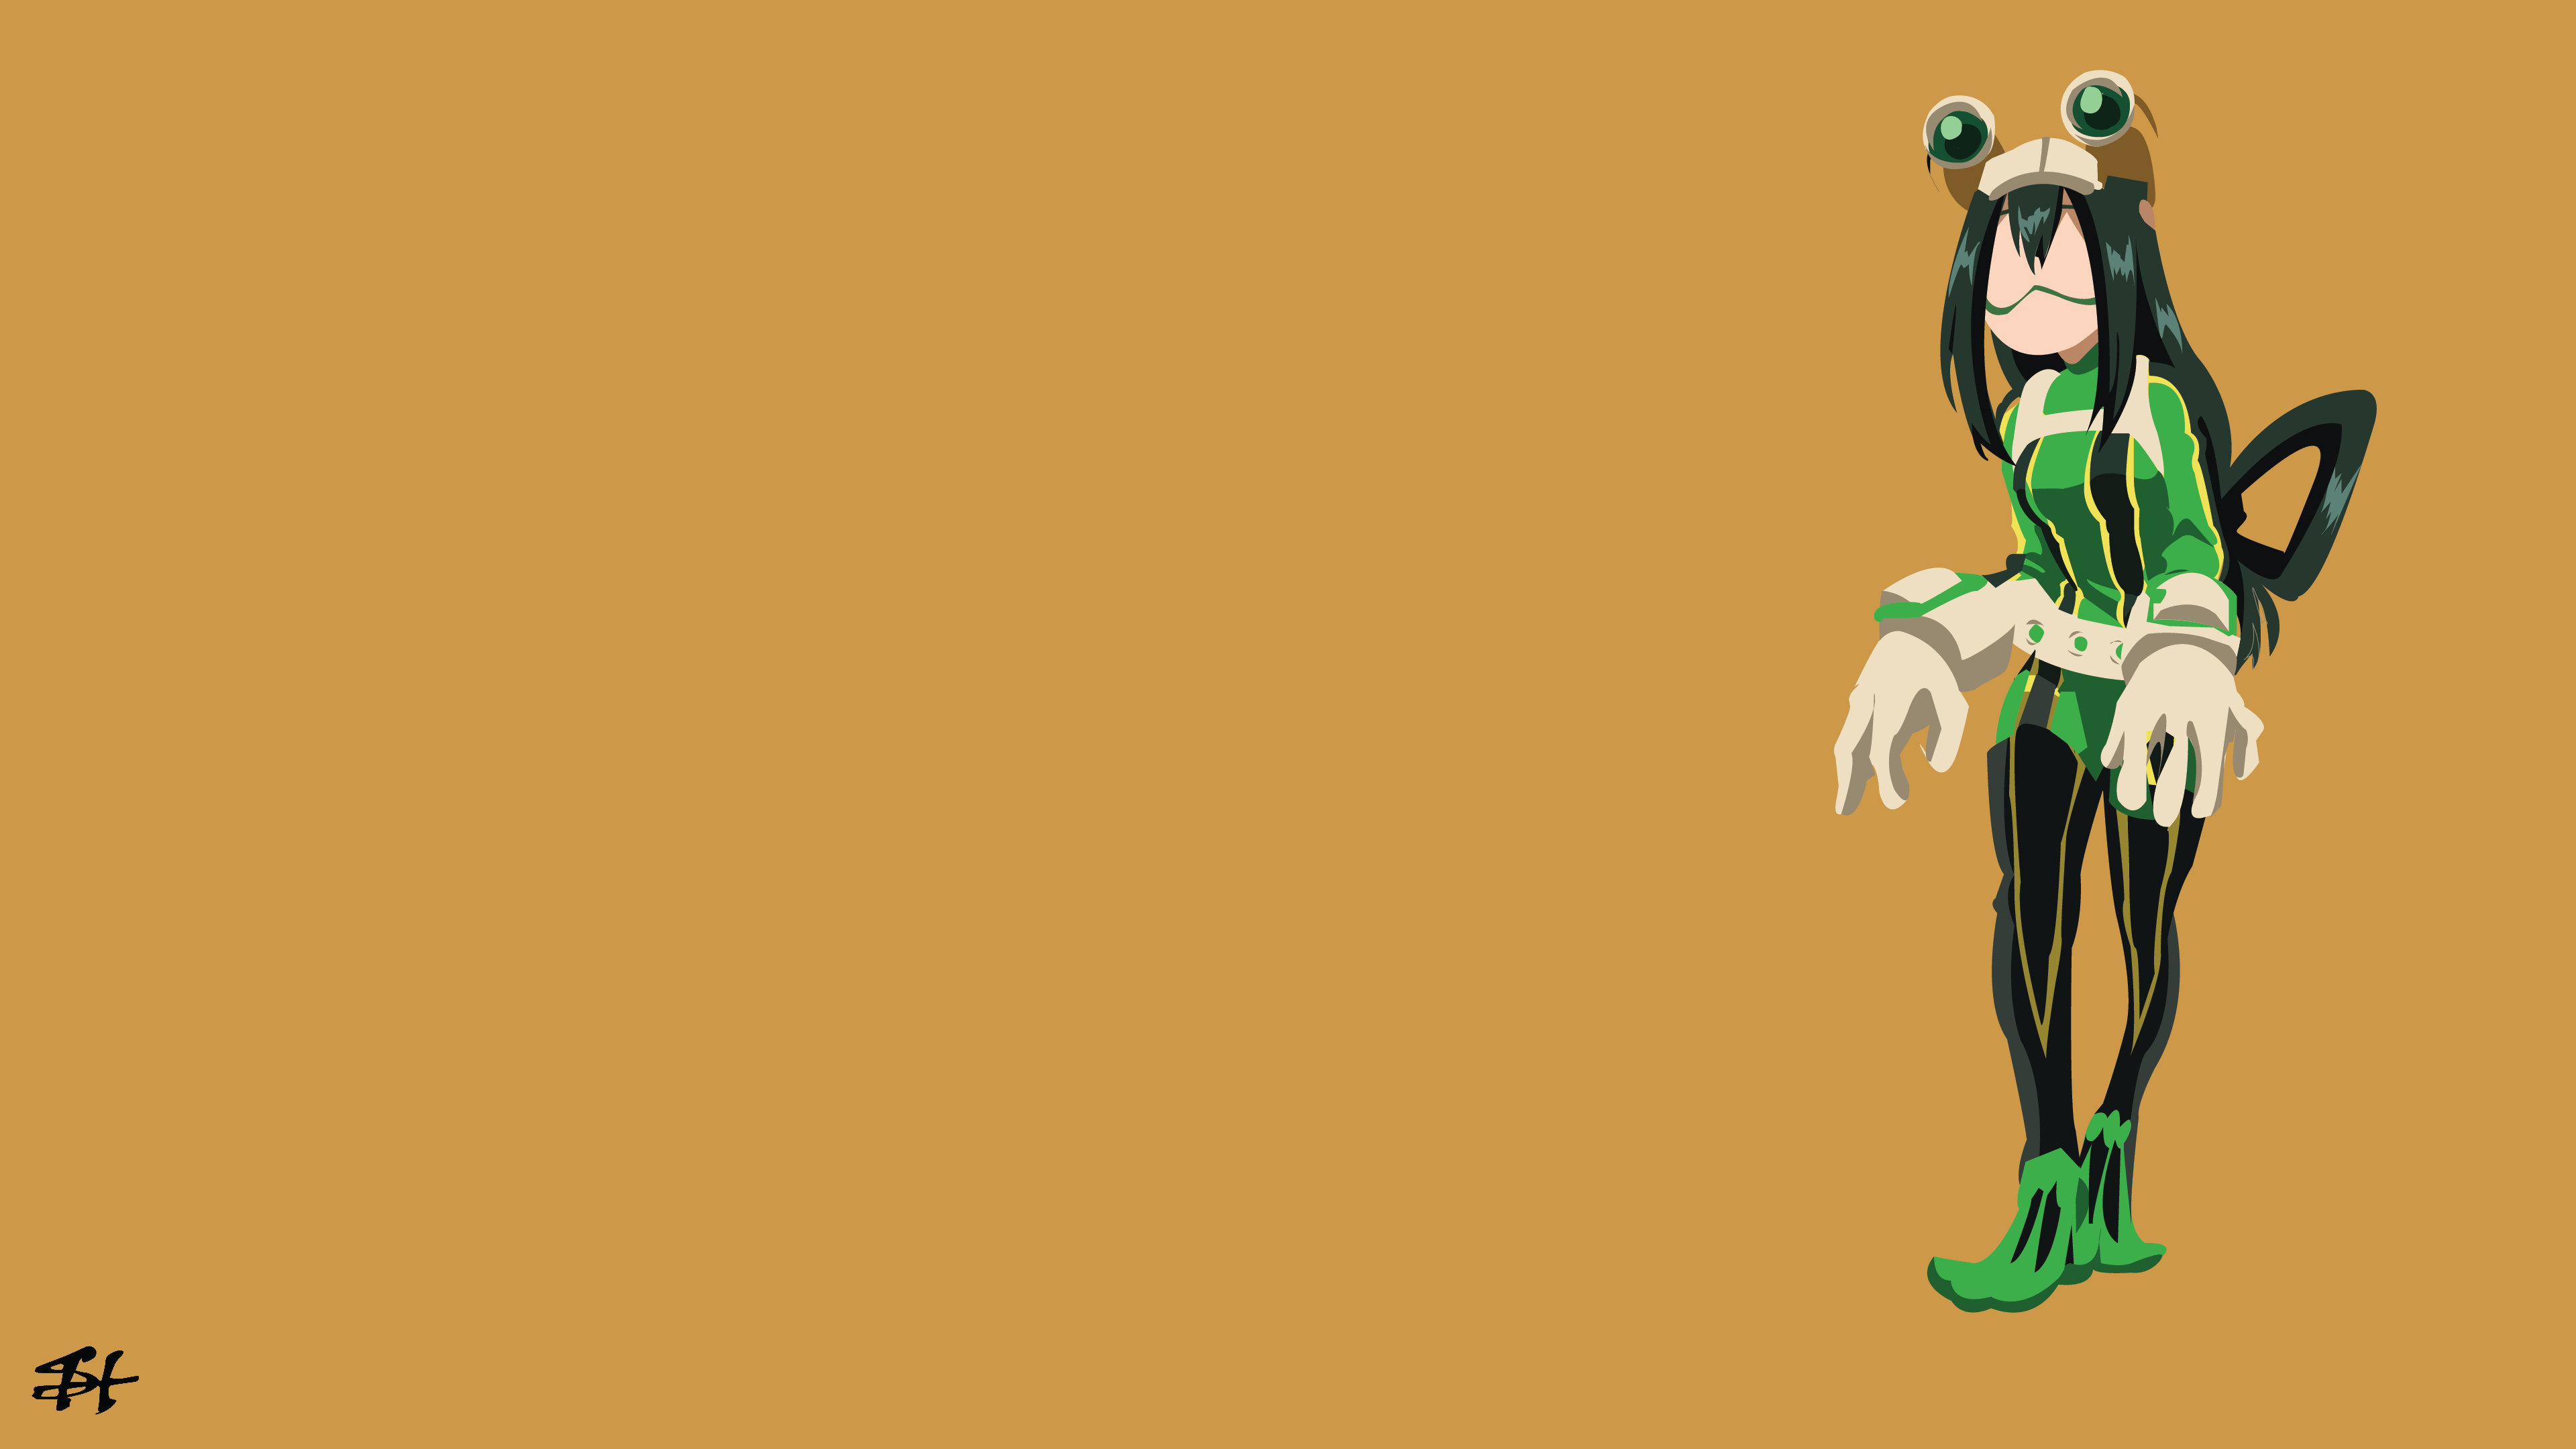 Download for free wallpaper from anime my hero academia with tags: My Hero Academia 4k Ultra HD Wallpaper | Background Image ...